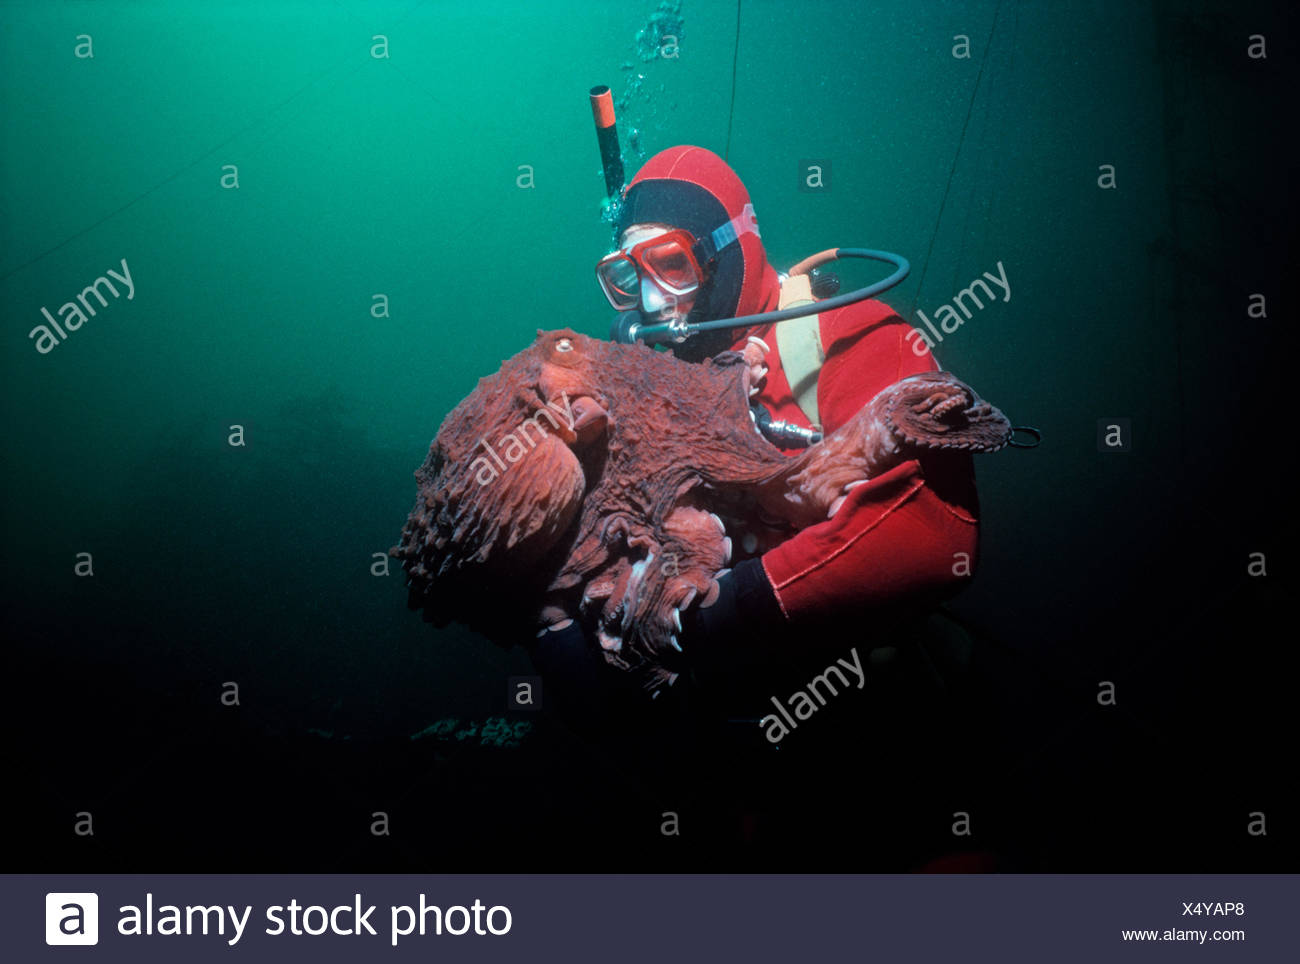 Giant Pacific Octopus (Enteroctopus dofleini) weighing over 20 Kilos interacting with a diver. Victoria Island, British Columbia, Canada. Pacific ocean. - Stock Image